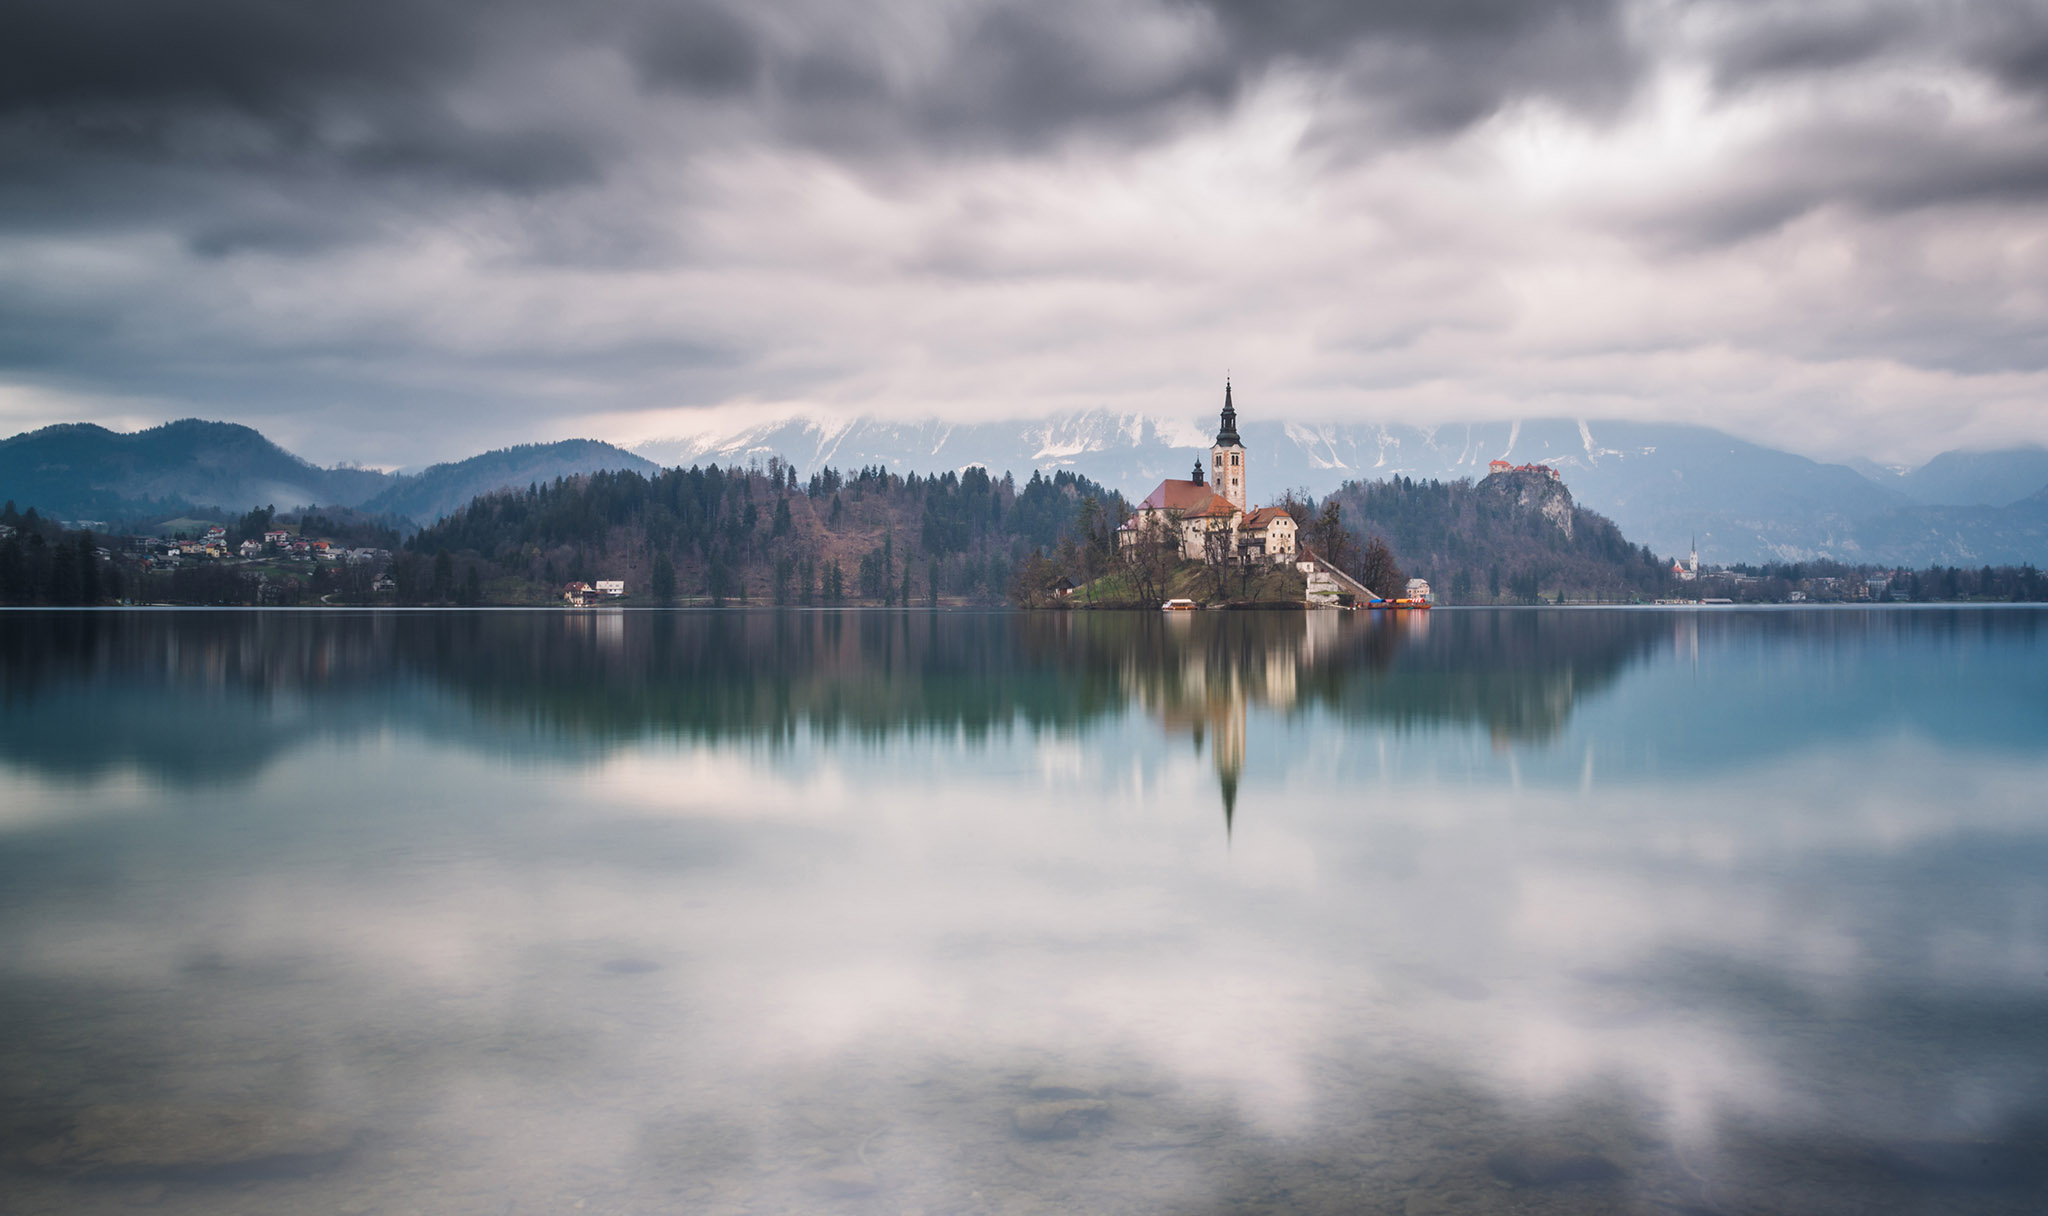 Lake Bled on a cloudy spring day with dark clouds above the landscape.